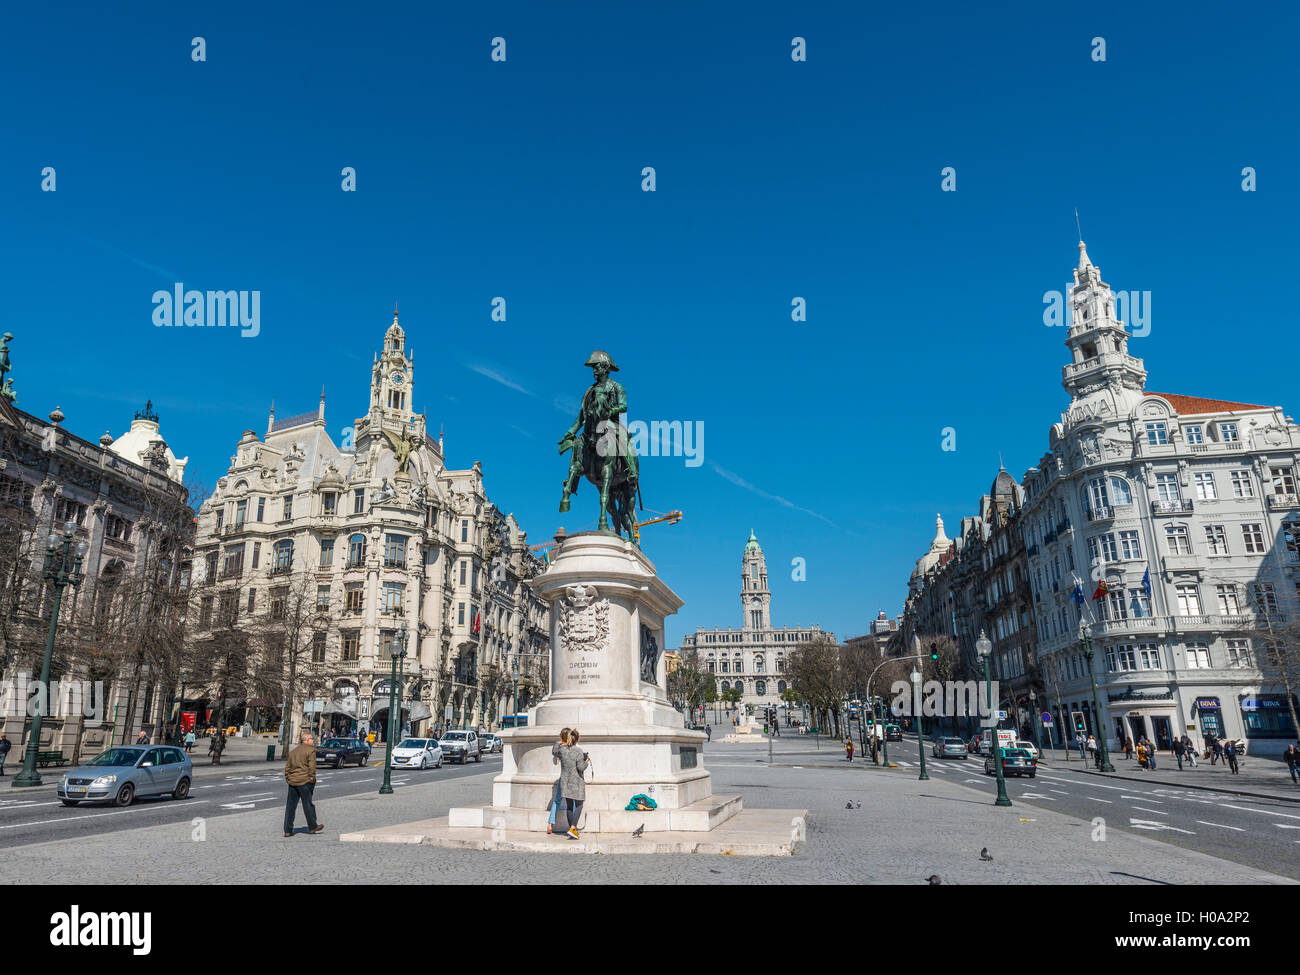 Statue équestre de Dom Pedro IV, Avenue Aliados et mairie, District de Porto, Porto, Portugal Photo Stock